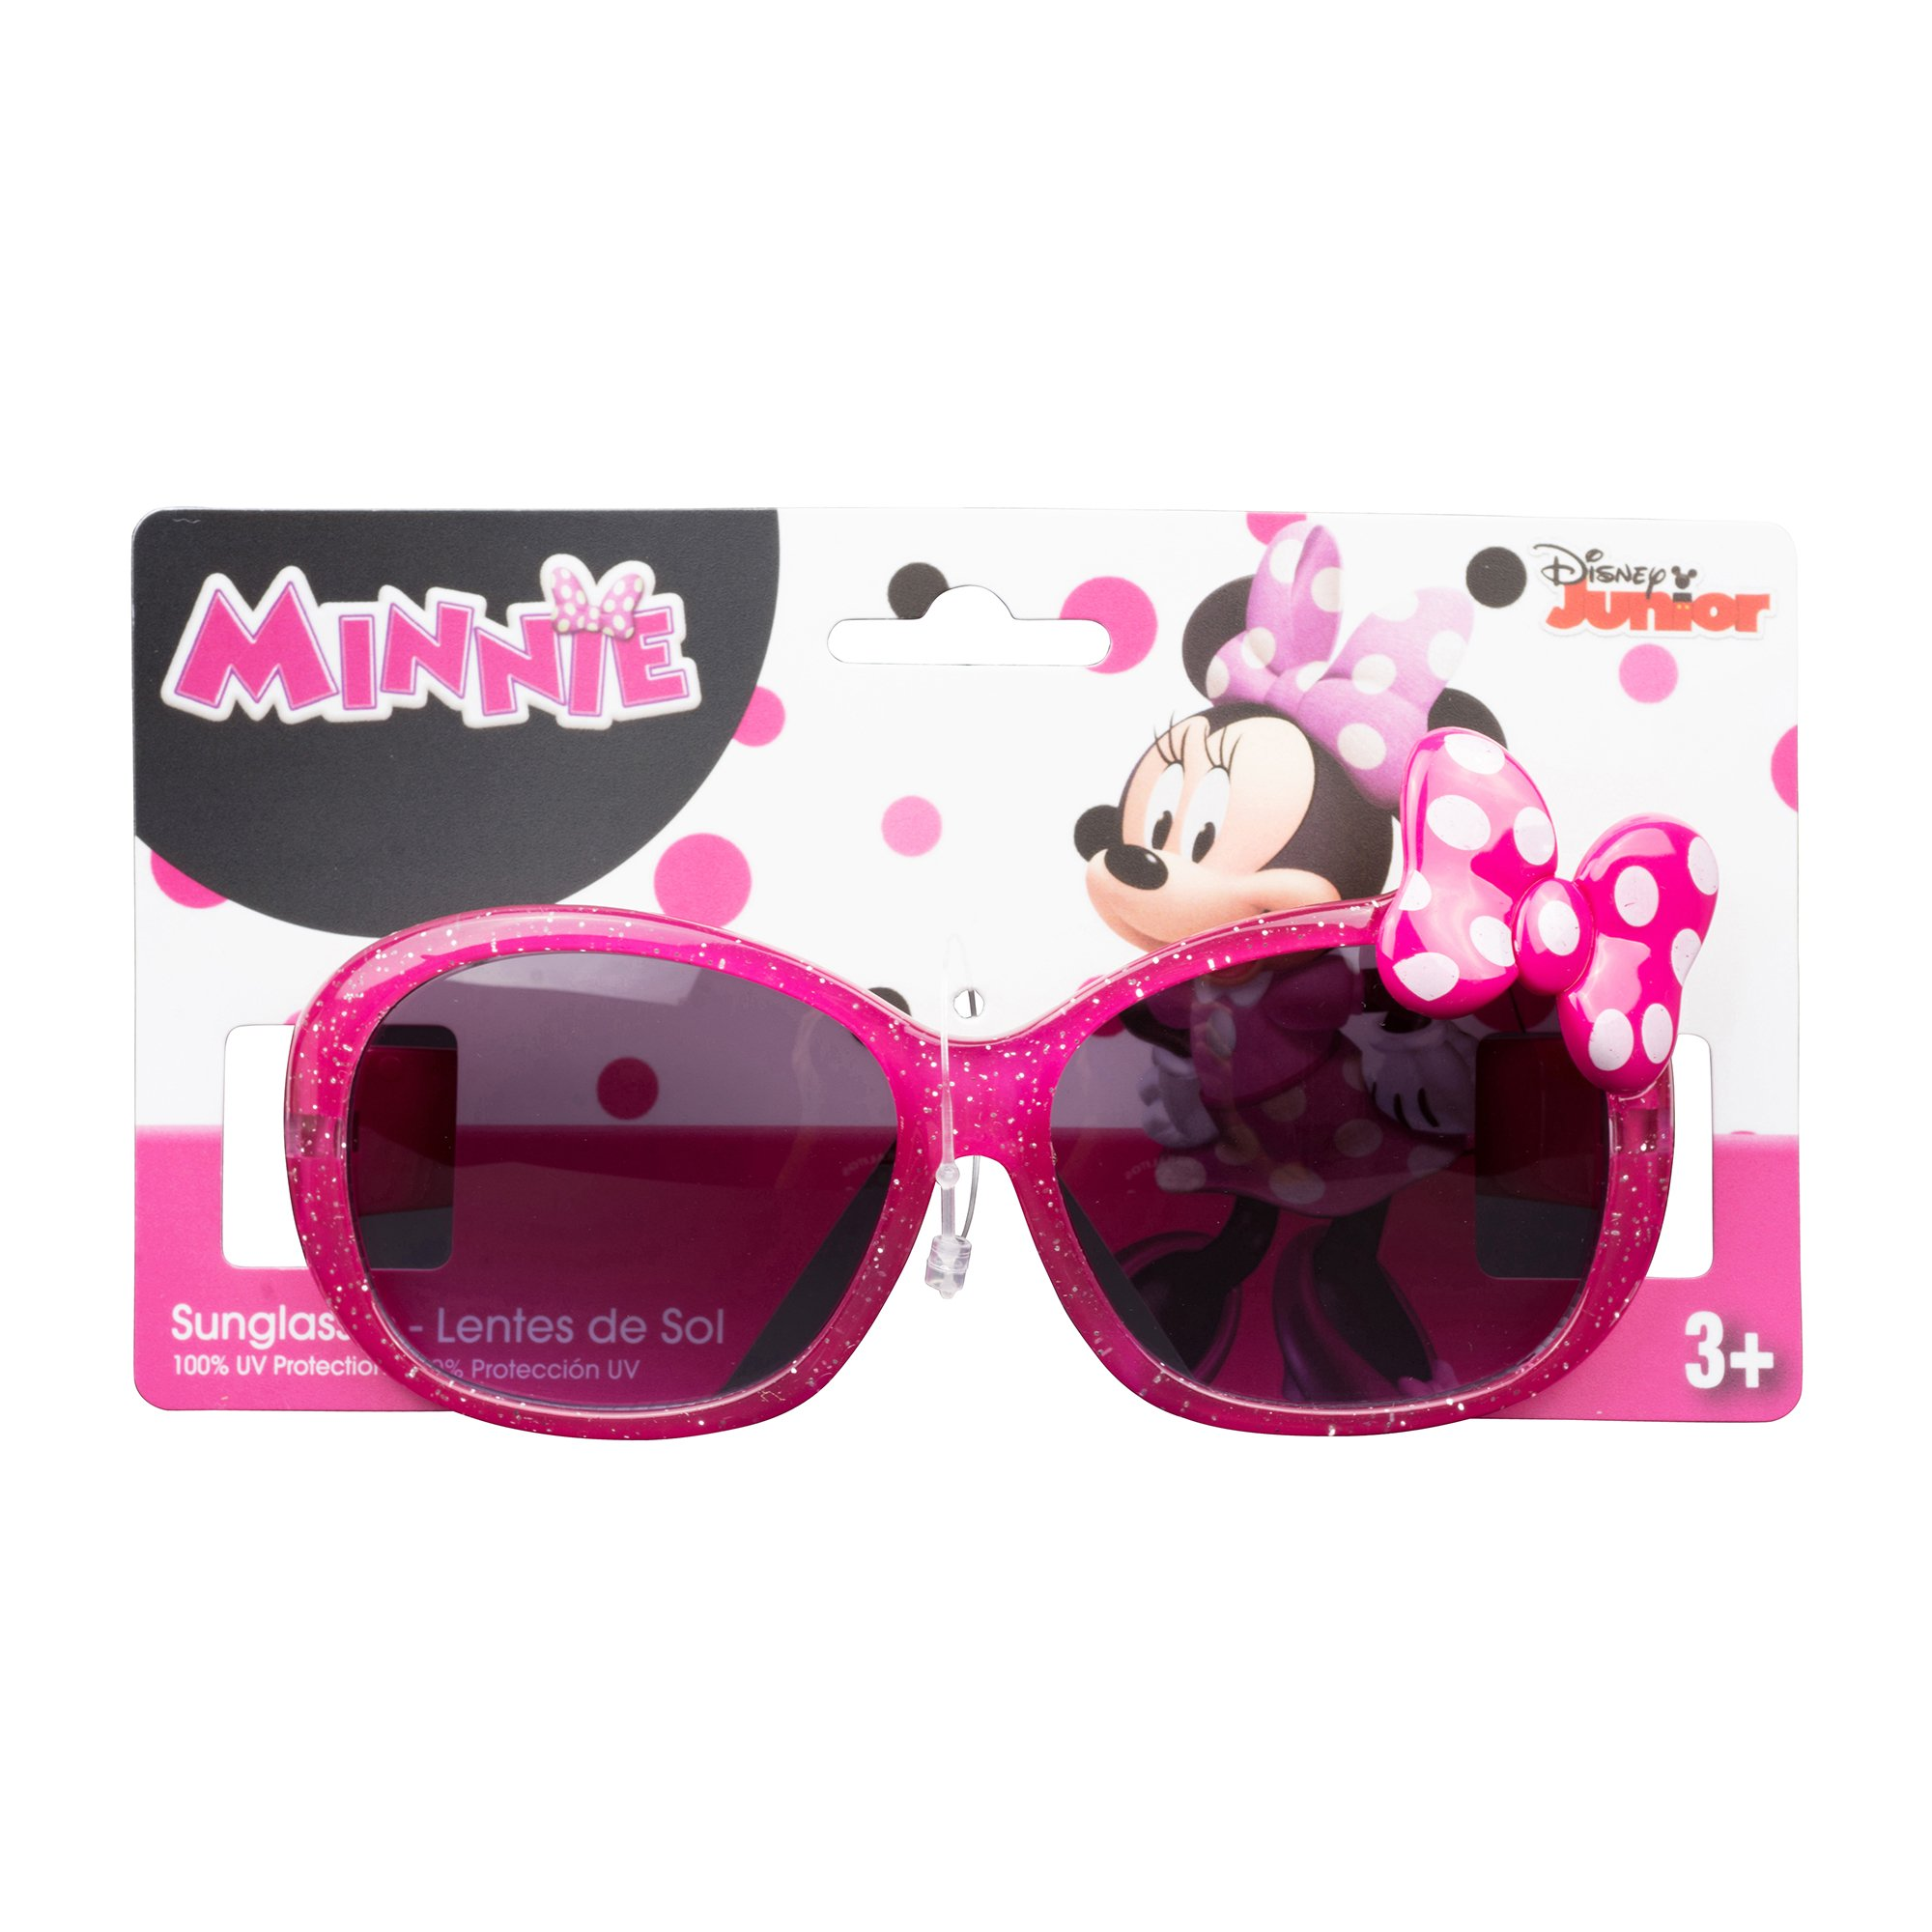 KIDS SUNGLASSES- GIRLS DISNEY 100% UV, MINNIE, MOANA, PRINCESS, FROZEN